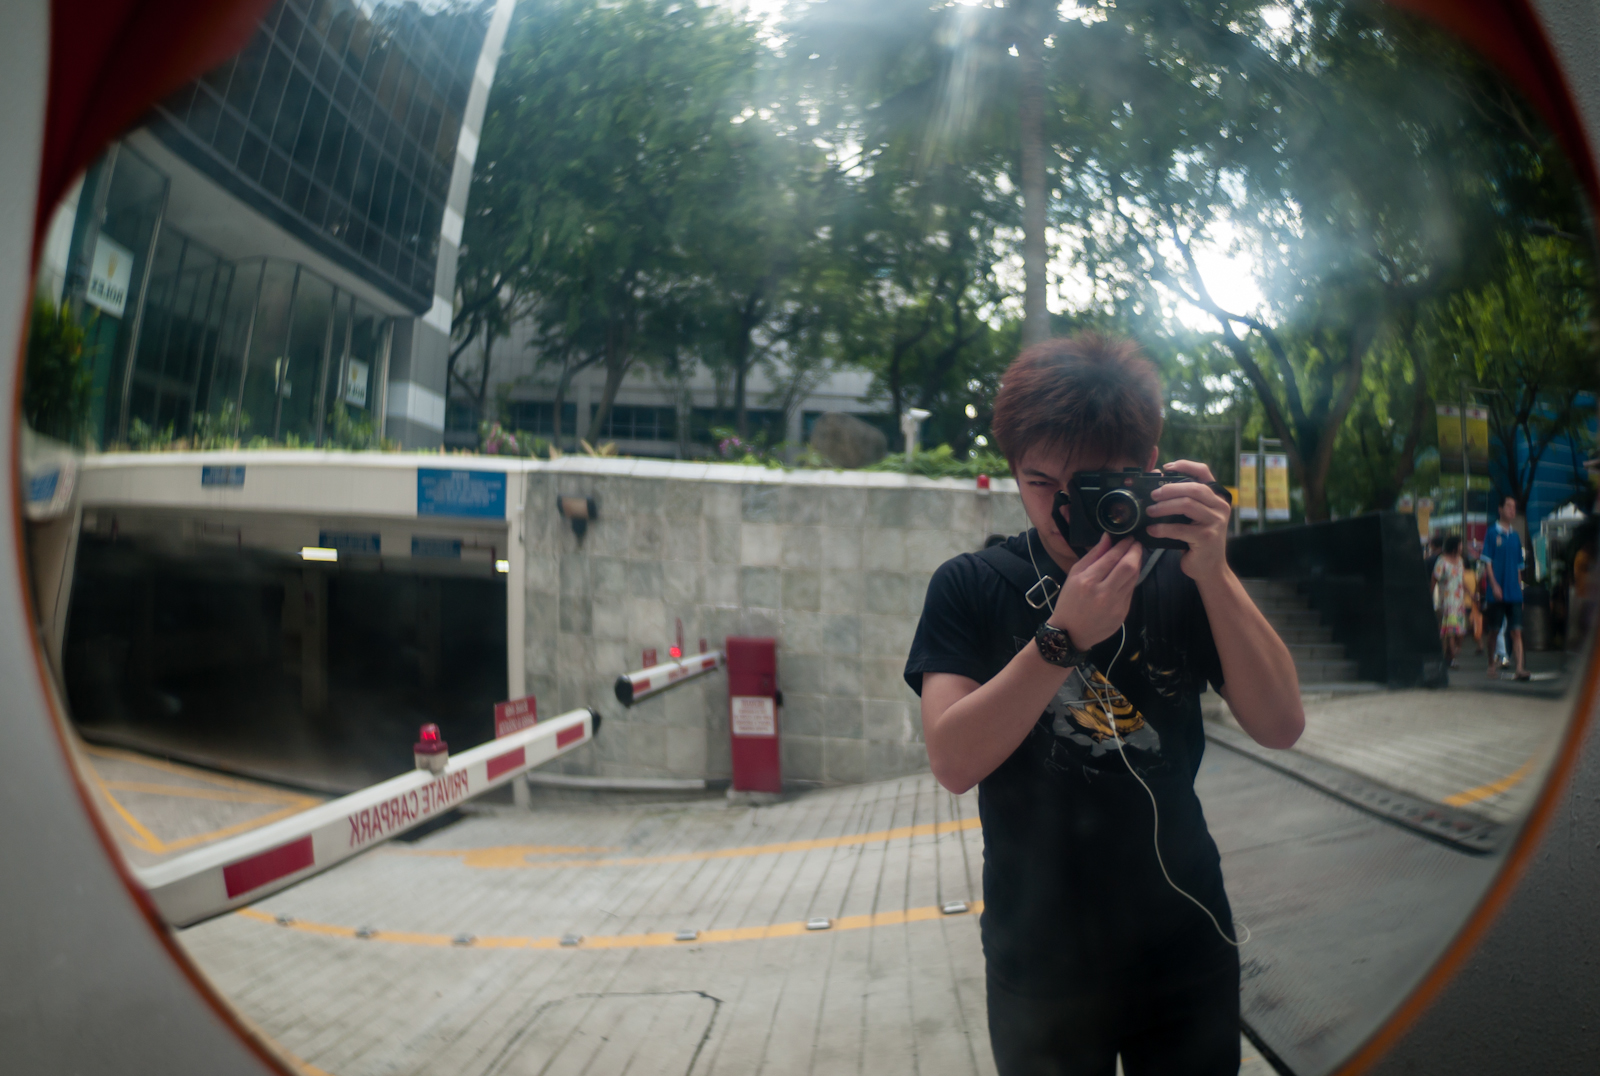 Photographer taking a picture of himself